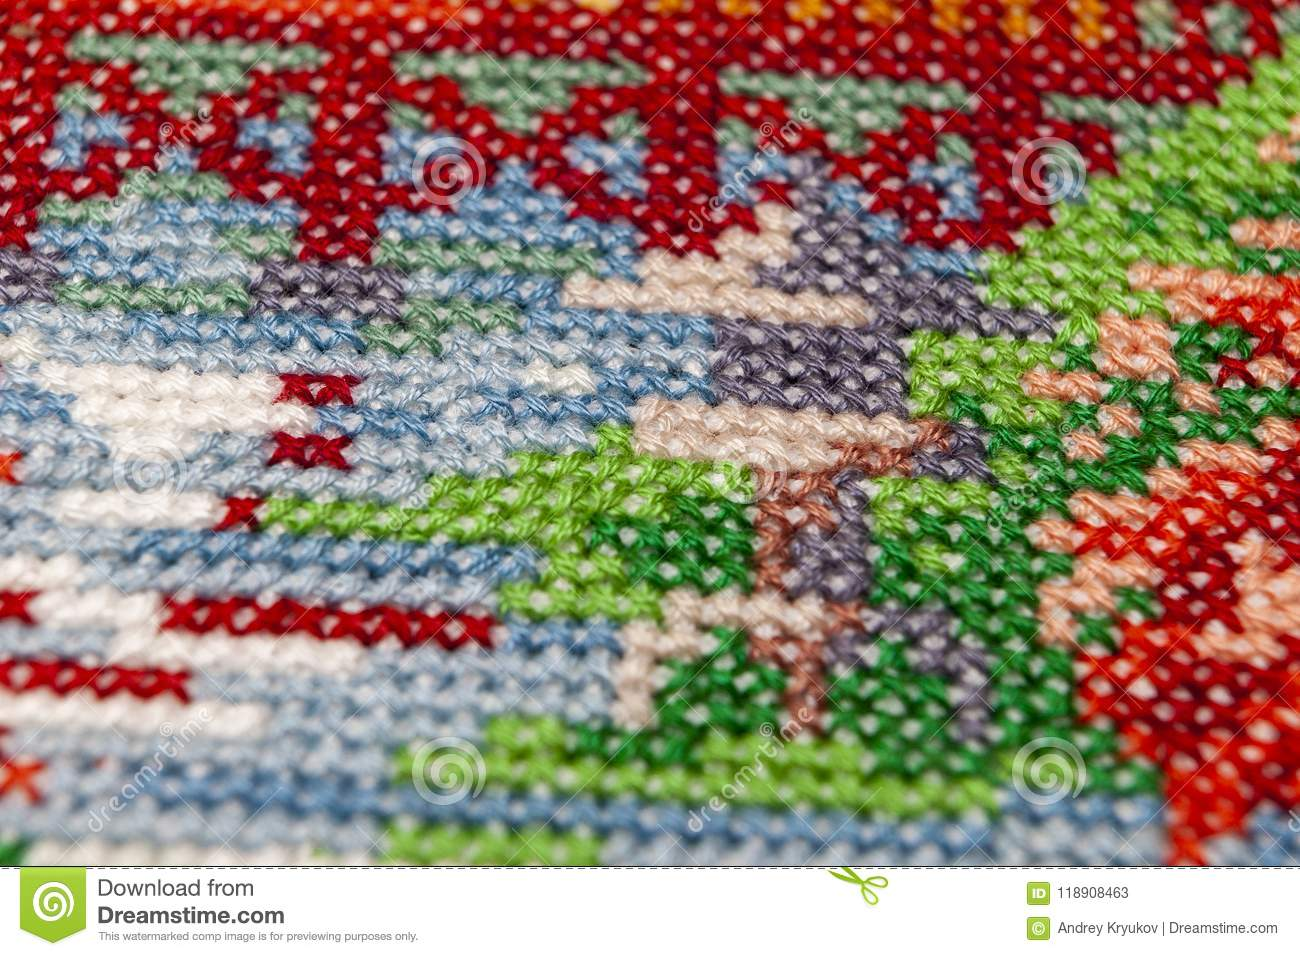 Needlework: a selection of sites